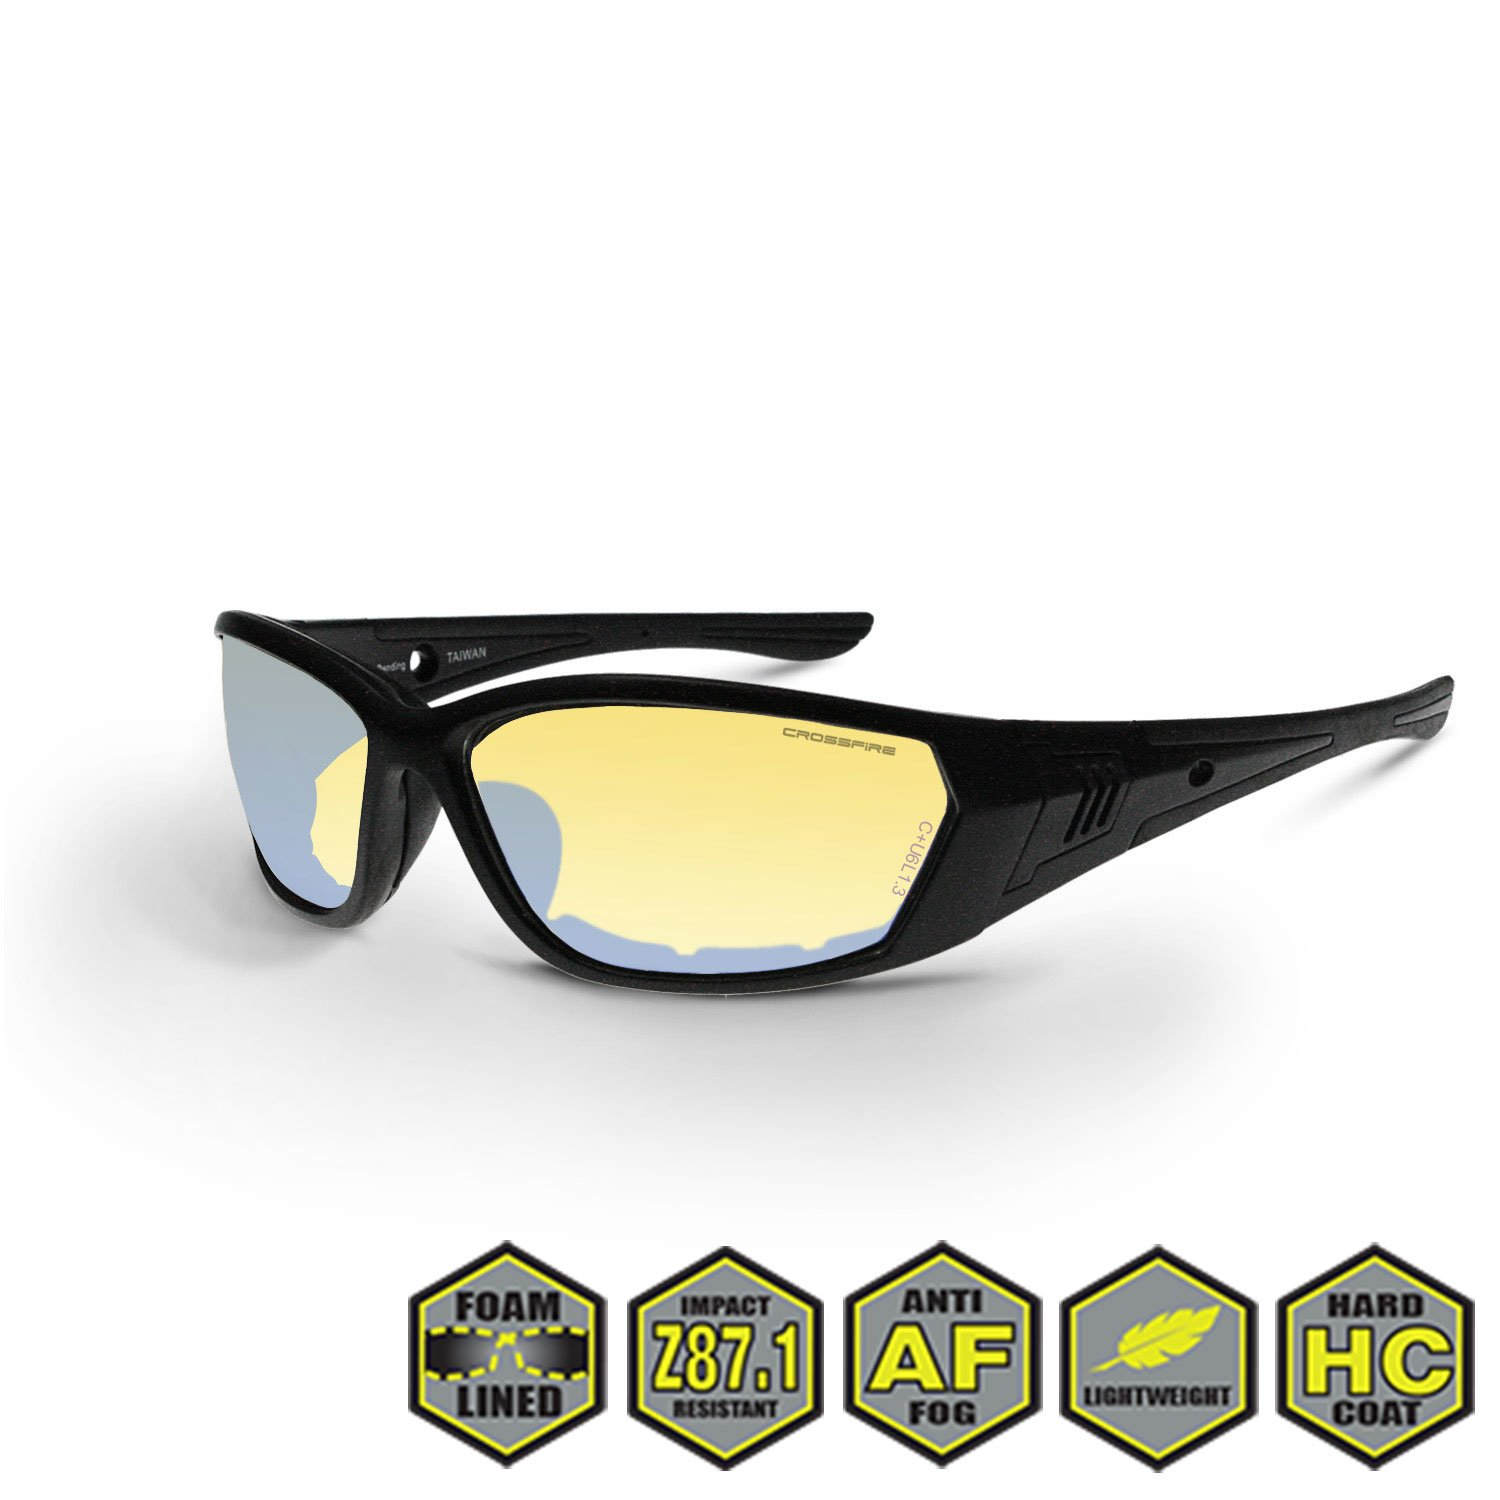 74d40647bf6fb Crossfire 710 Foam Safety Glasses I O Lens Iwantworkwear. By Crossfire  Eyewear Be The First To Rate This. Crossfire Safety Glasses Mp7 Dark Smoke  Anti Fog ...